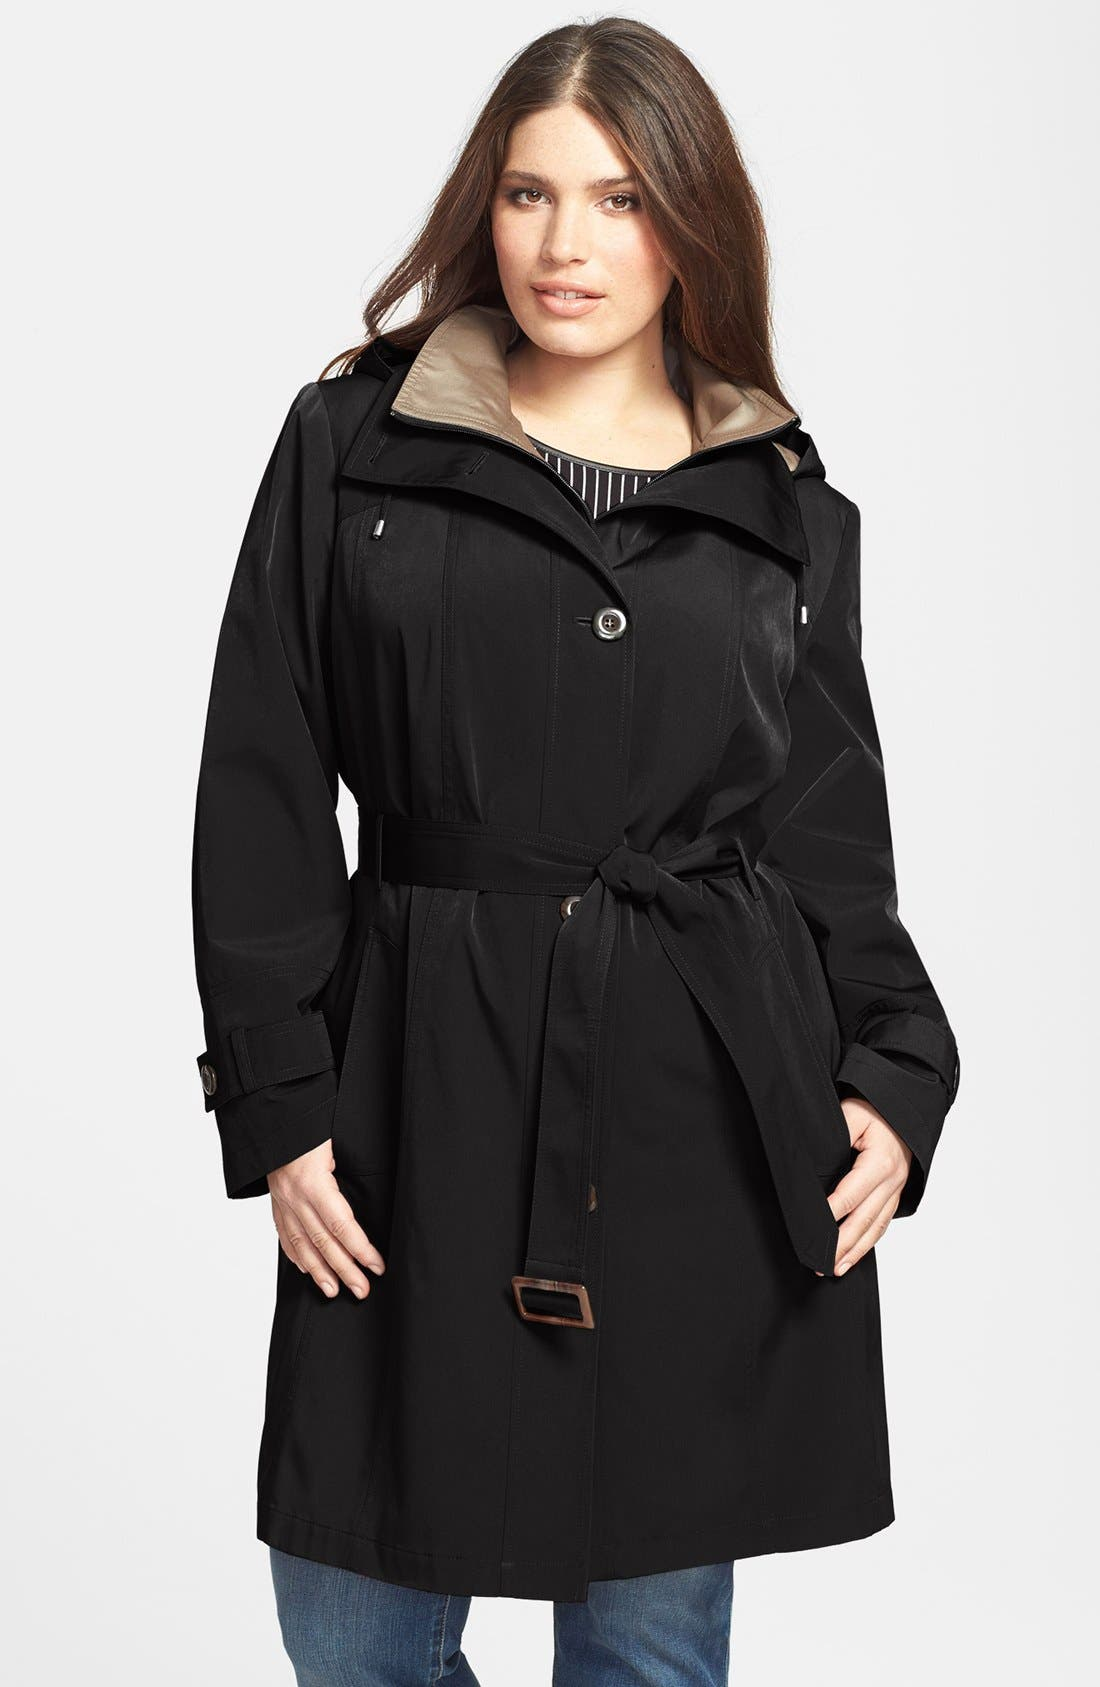 Alternate Image 1 Selected - Gallery Two-Tone Belted Walking Coat with Detachable Hood (Plus Size)